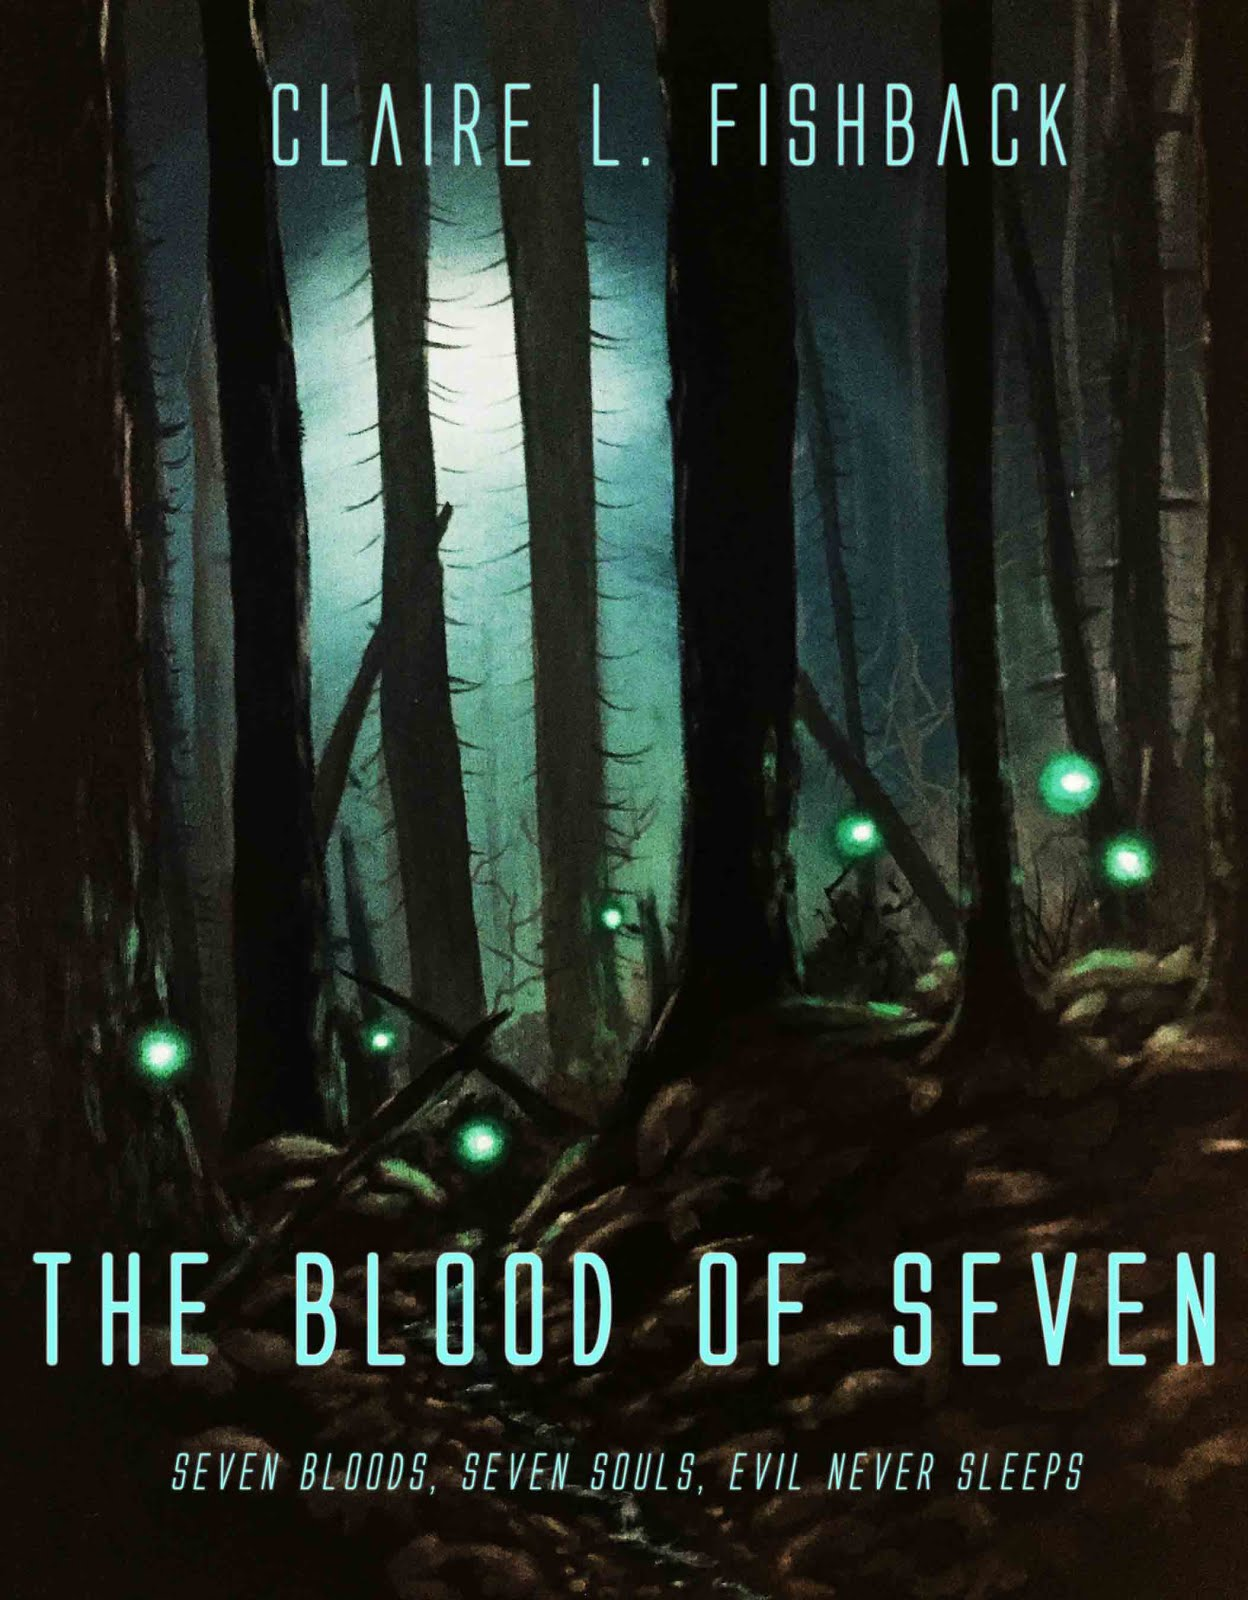 THE BLOOD OF SEVEN Kindle Scout Campaign!